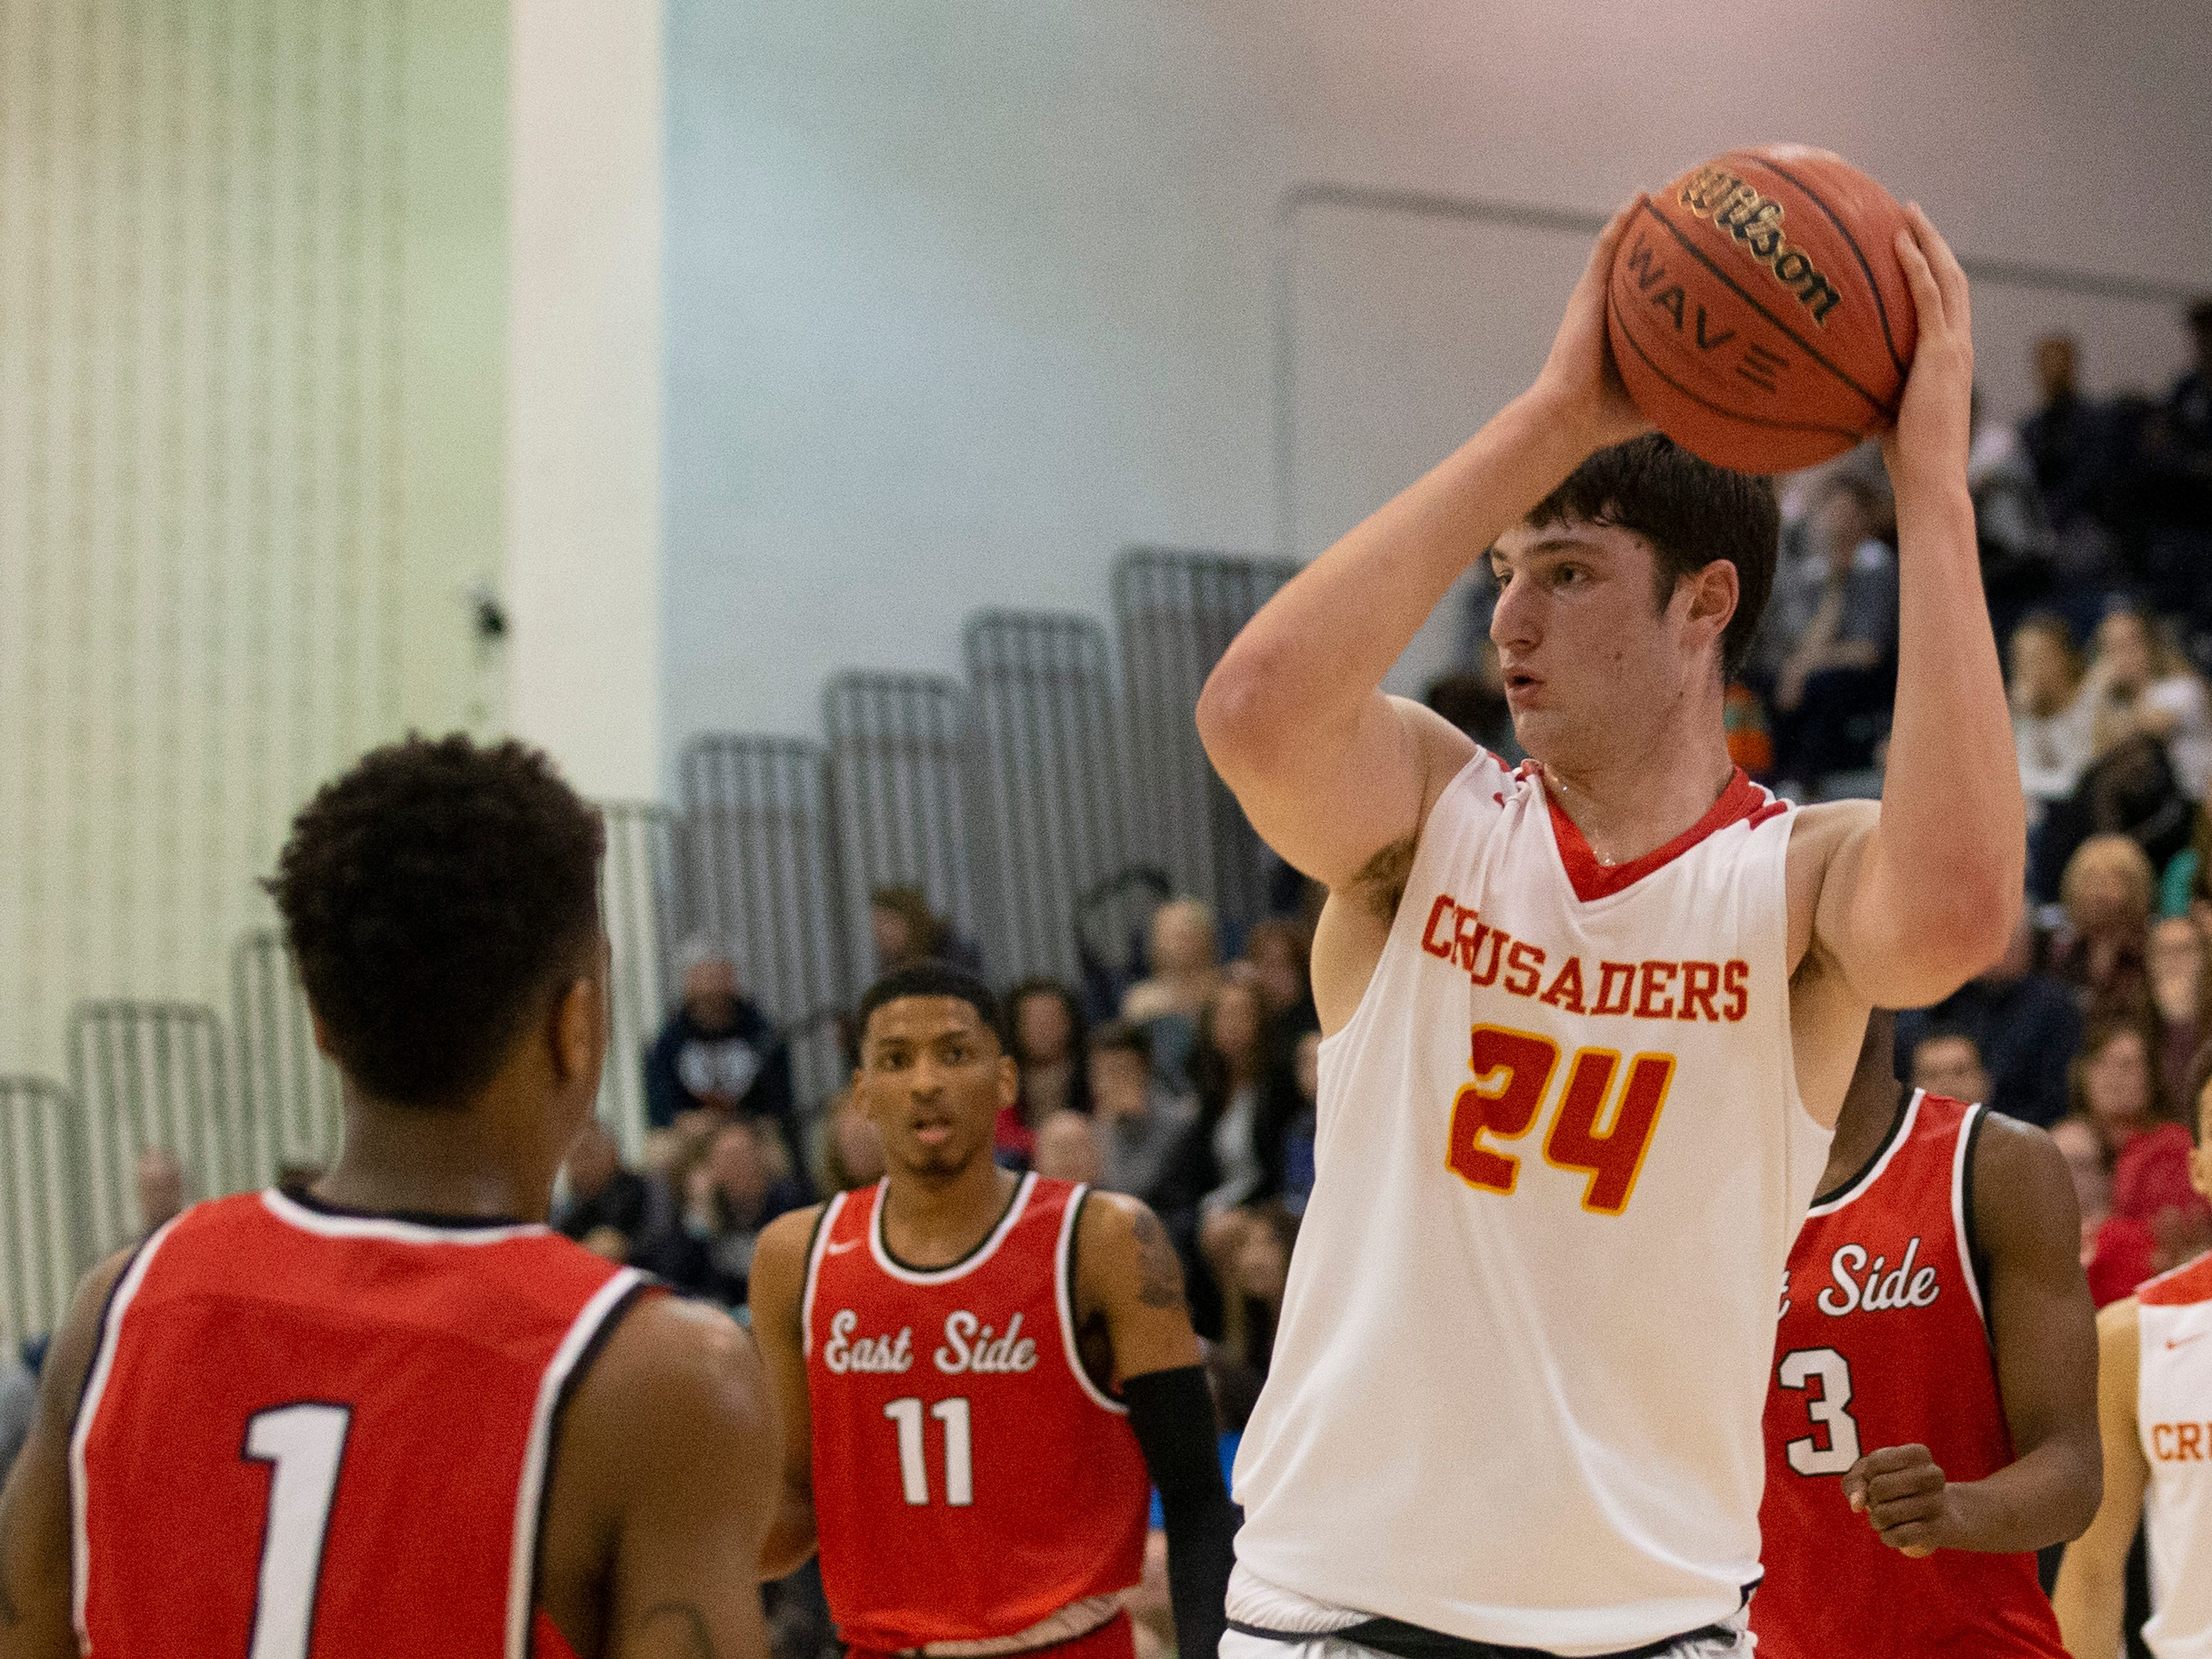 Matt Zona, Bergen Catholic, looks to pass in during first half action. Bergen Catholic vs. Newark East Side in the 5:30 p.m. semifinals of the 2019 NJSIAA Tournament of Champions in Toms River on March 15, 2019.